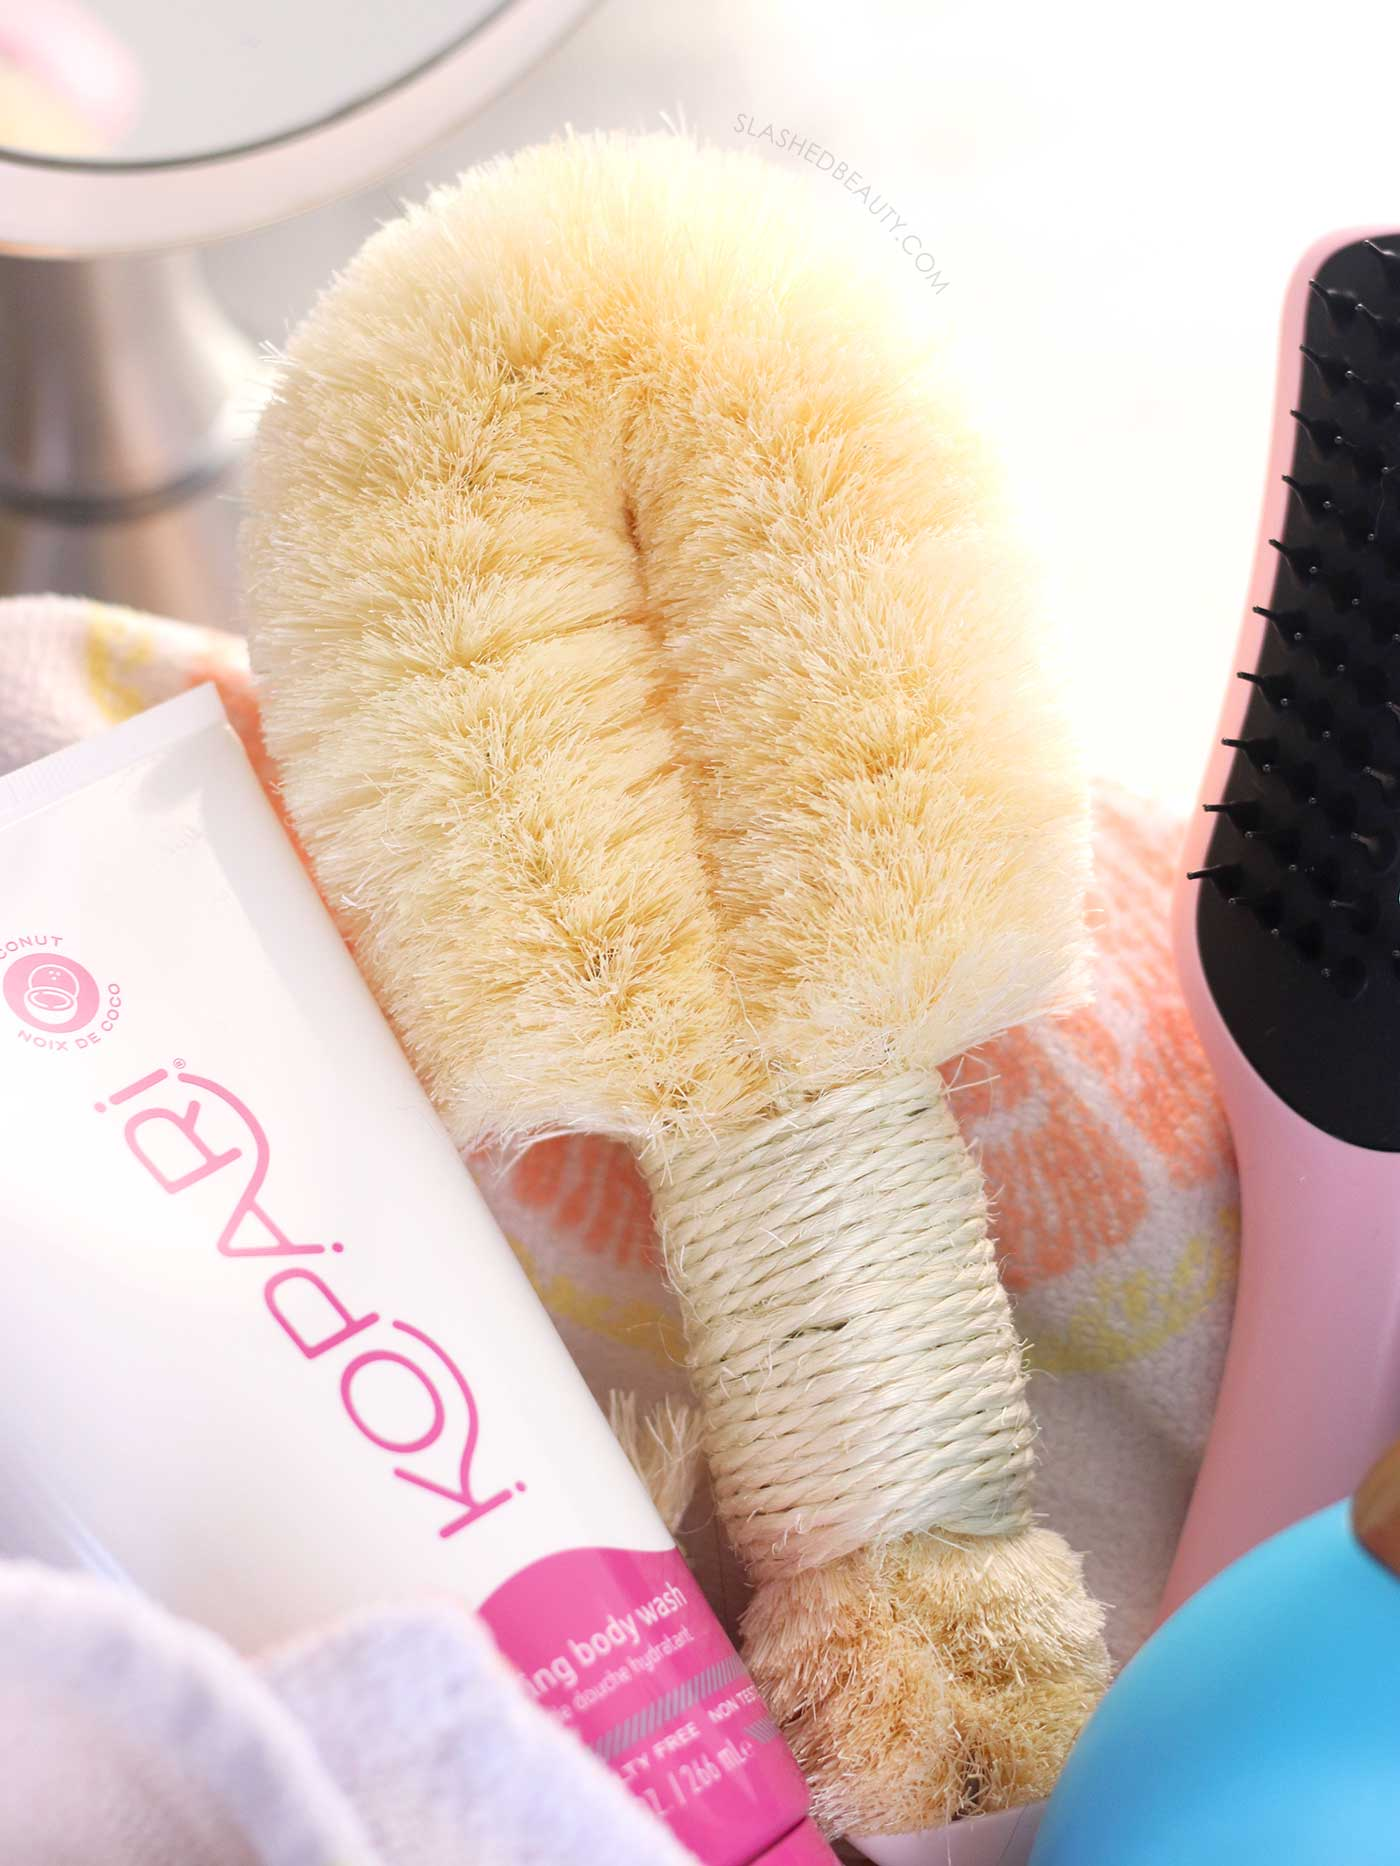 Best Tool for Body Exfoliation: Daily Concepts Sisal Brush   6 Best Shower Products for Summer   Slashed Beauty